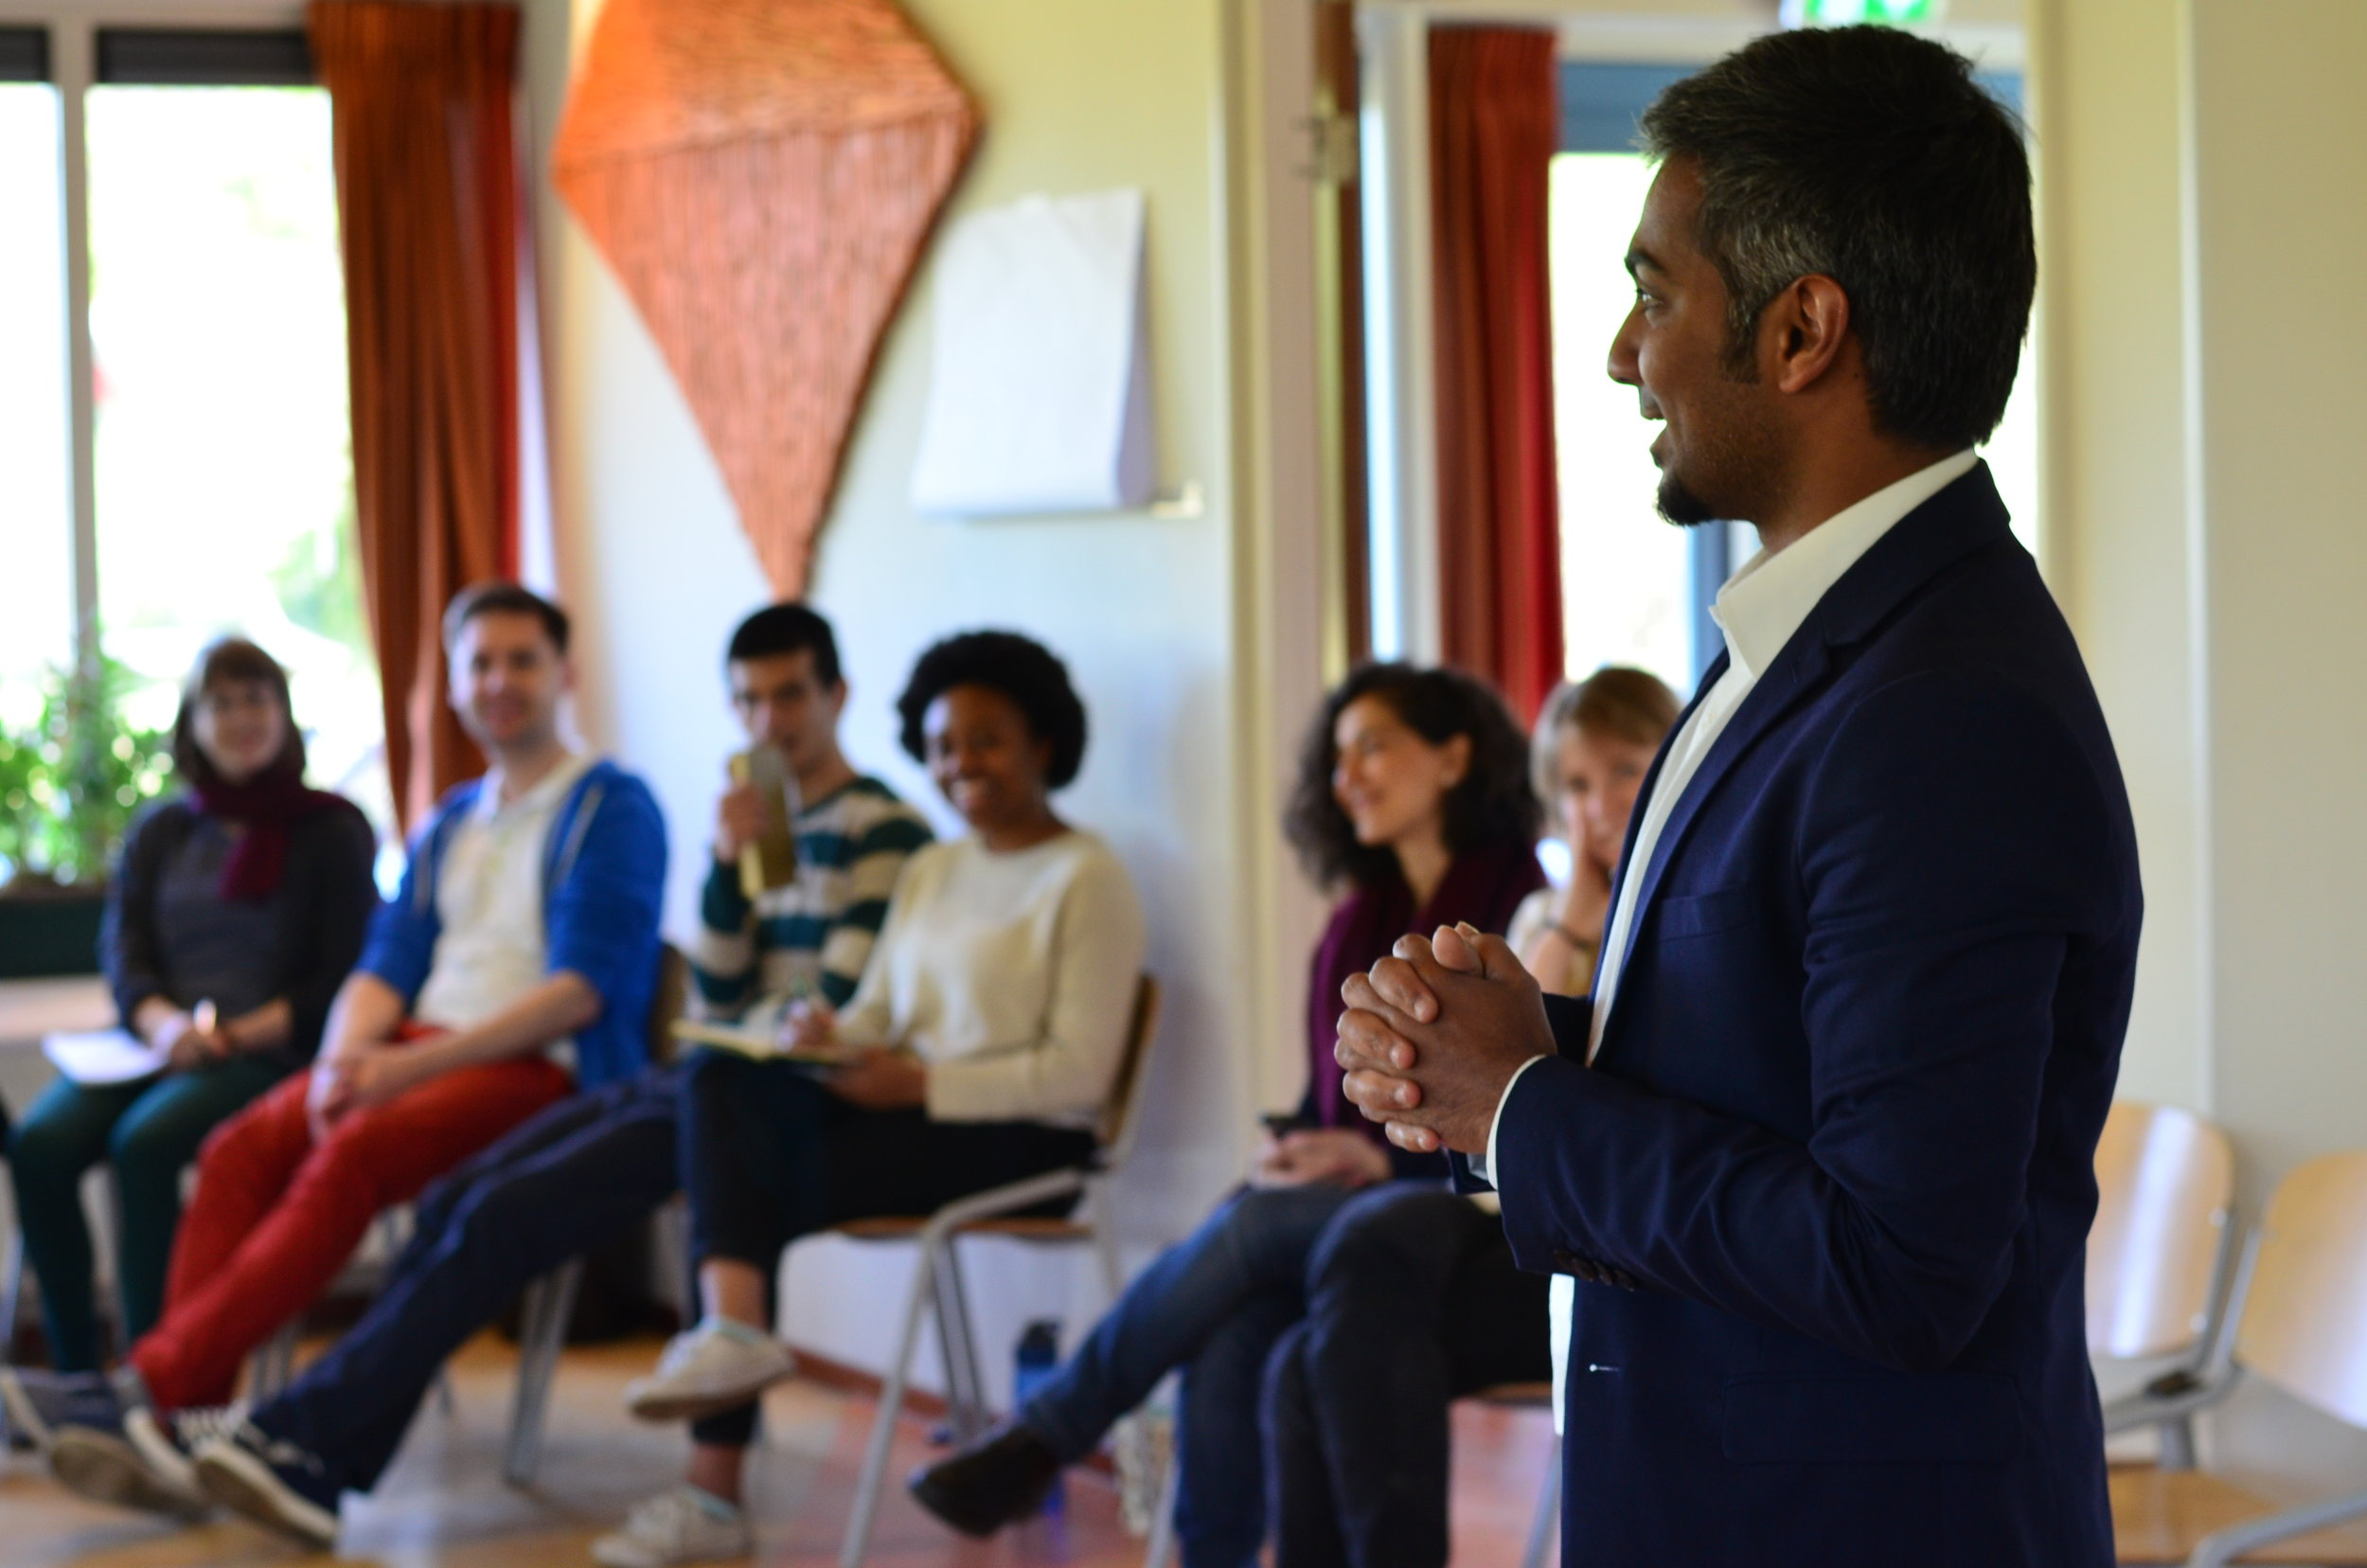 Green Insights' CEO - Ajay, inspiring young entrepreneurs at the 'Waterlution Innovation Summit 2017' in Wijk Aan Zee, Netherlands